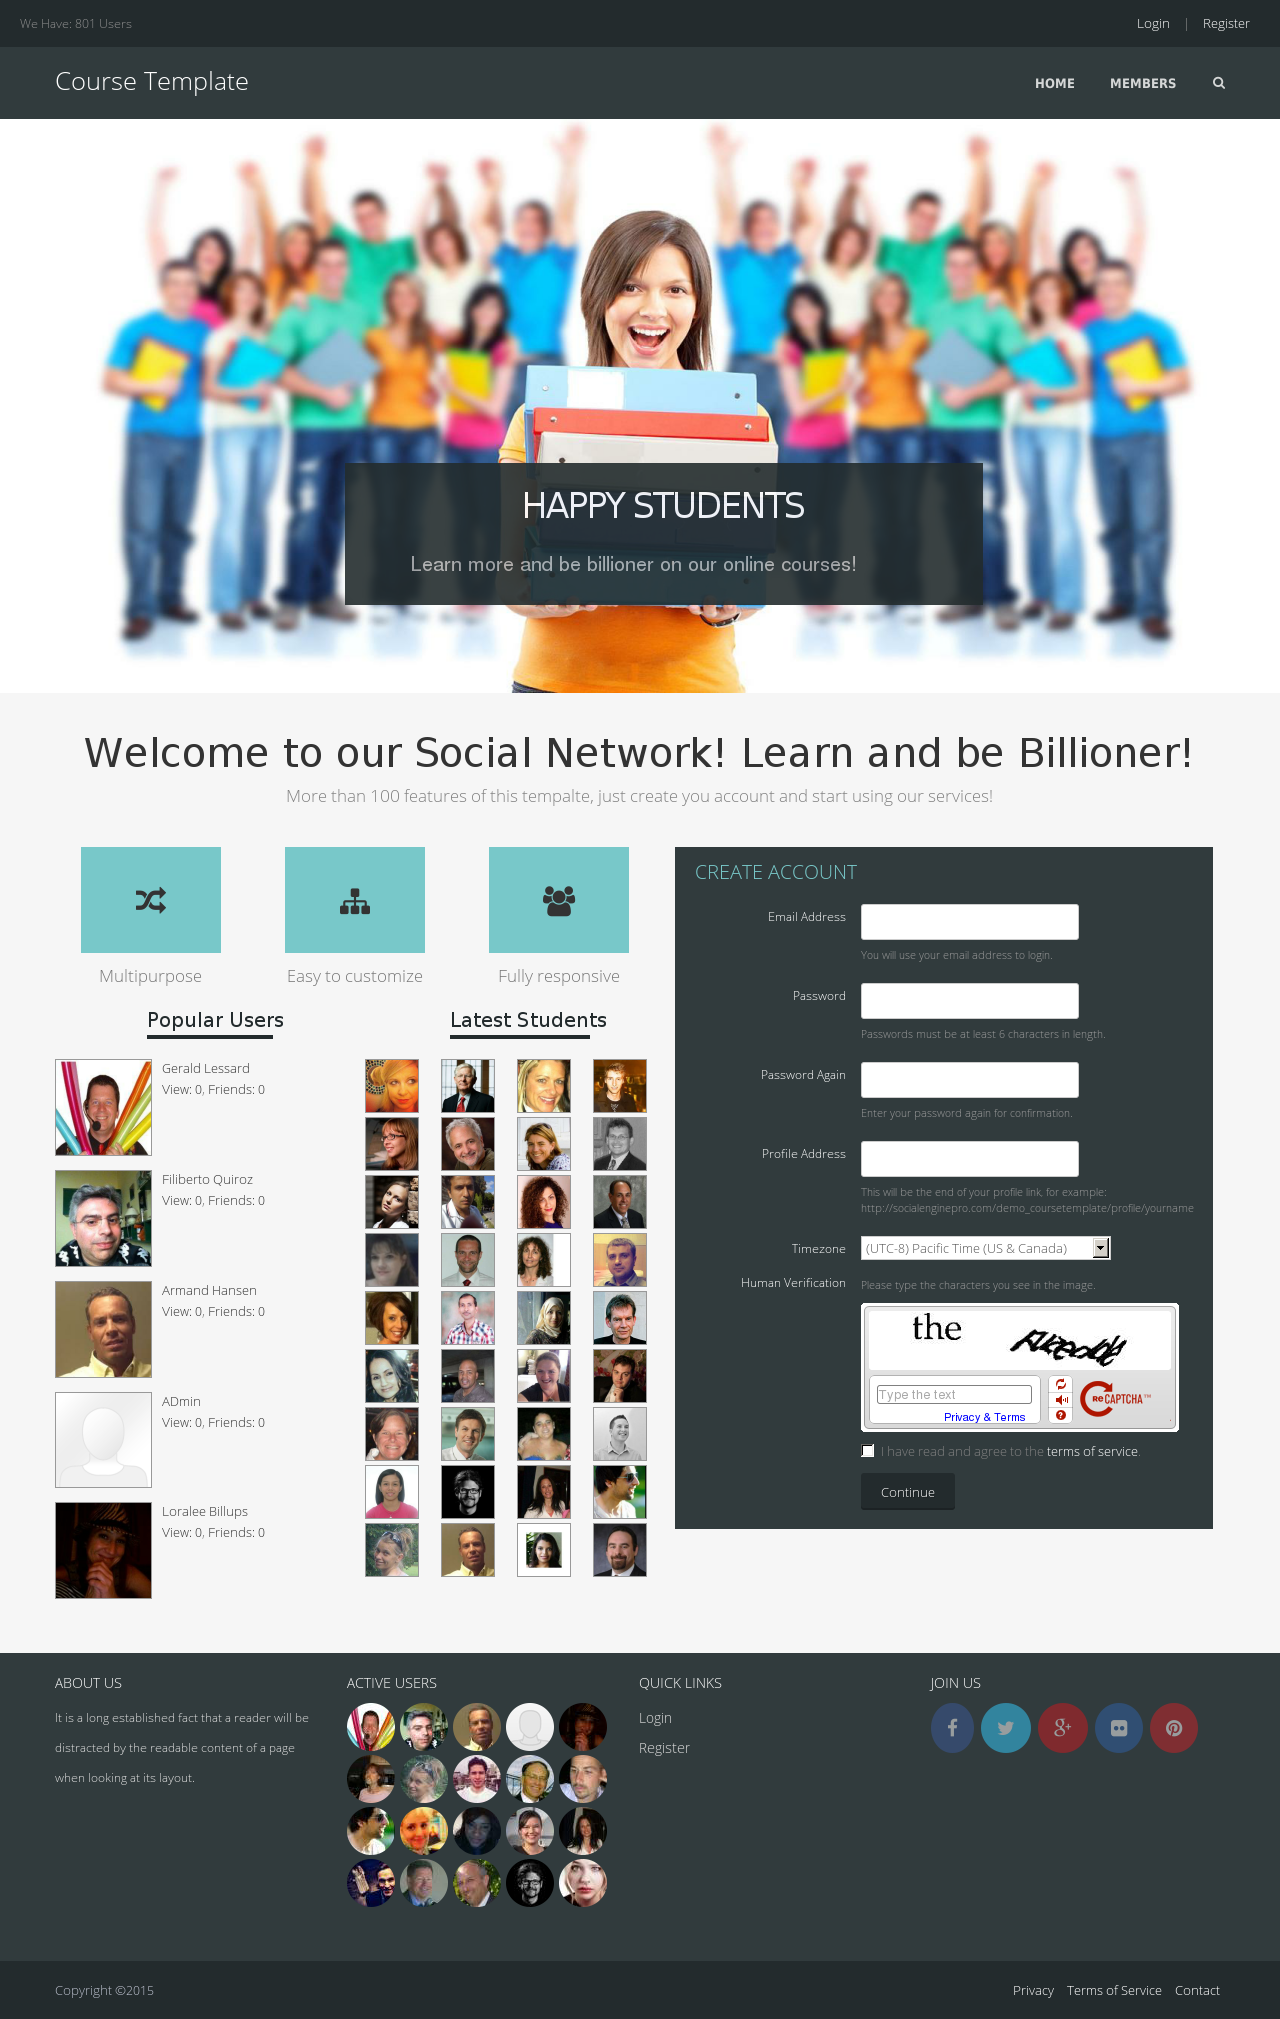 Social engine templates 28 images course template 4 9 template social engine templates course template 4 9 template for socialengine pronofoot35fo Image collections